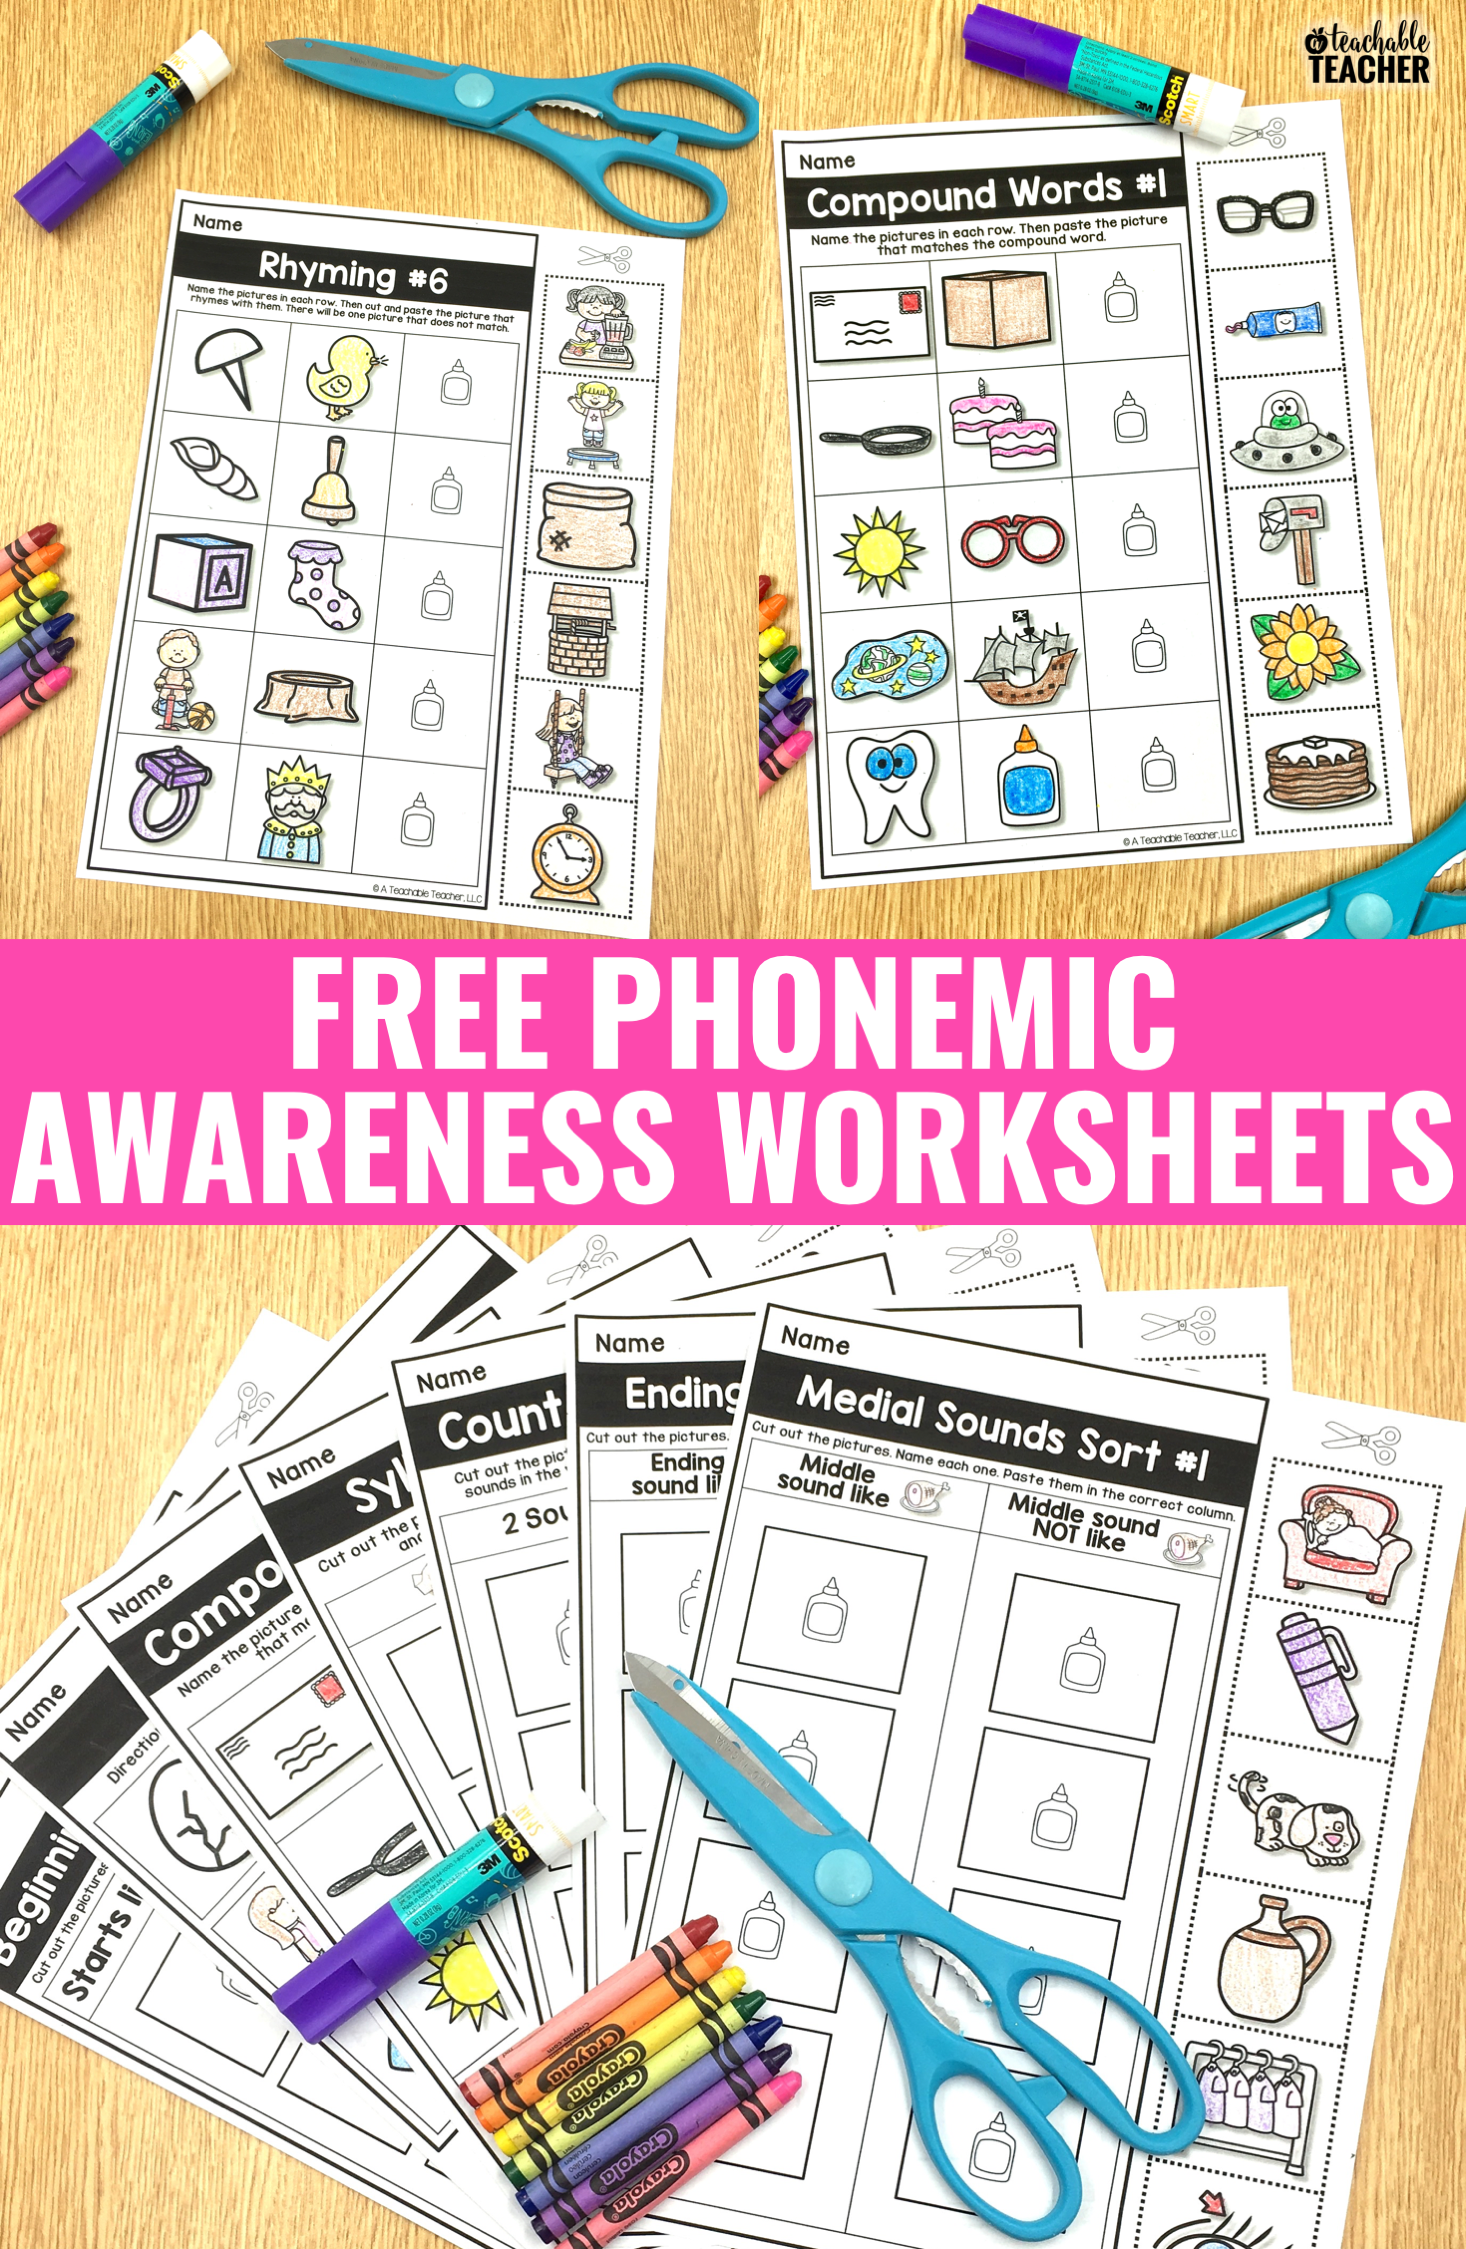 small resolution of FREE Phonemic Awareness Worksheets - Interactive and Picture-Based   Phonemic  awareness